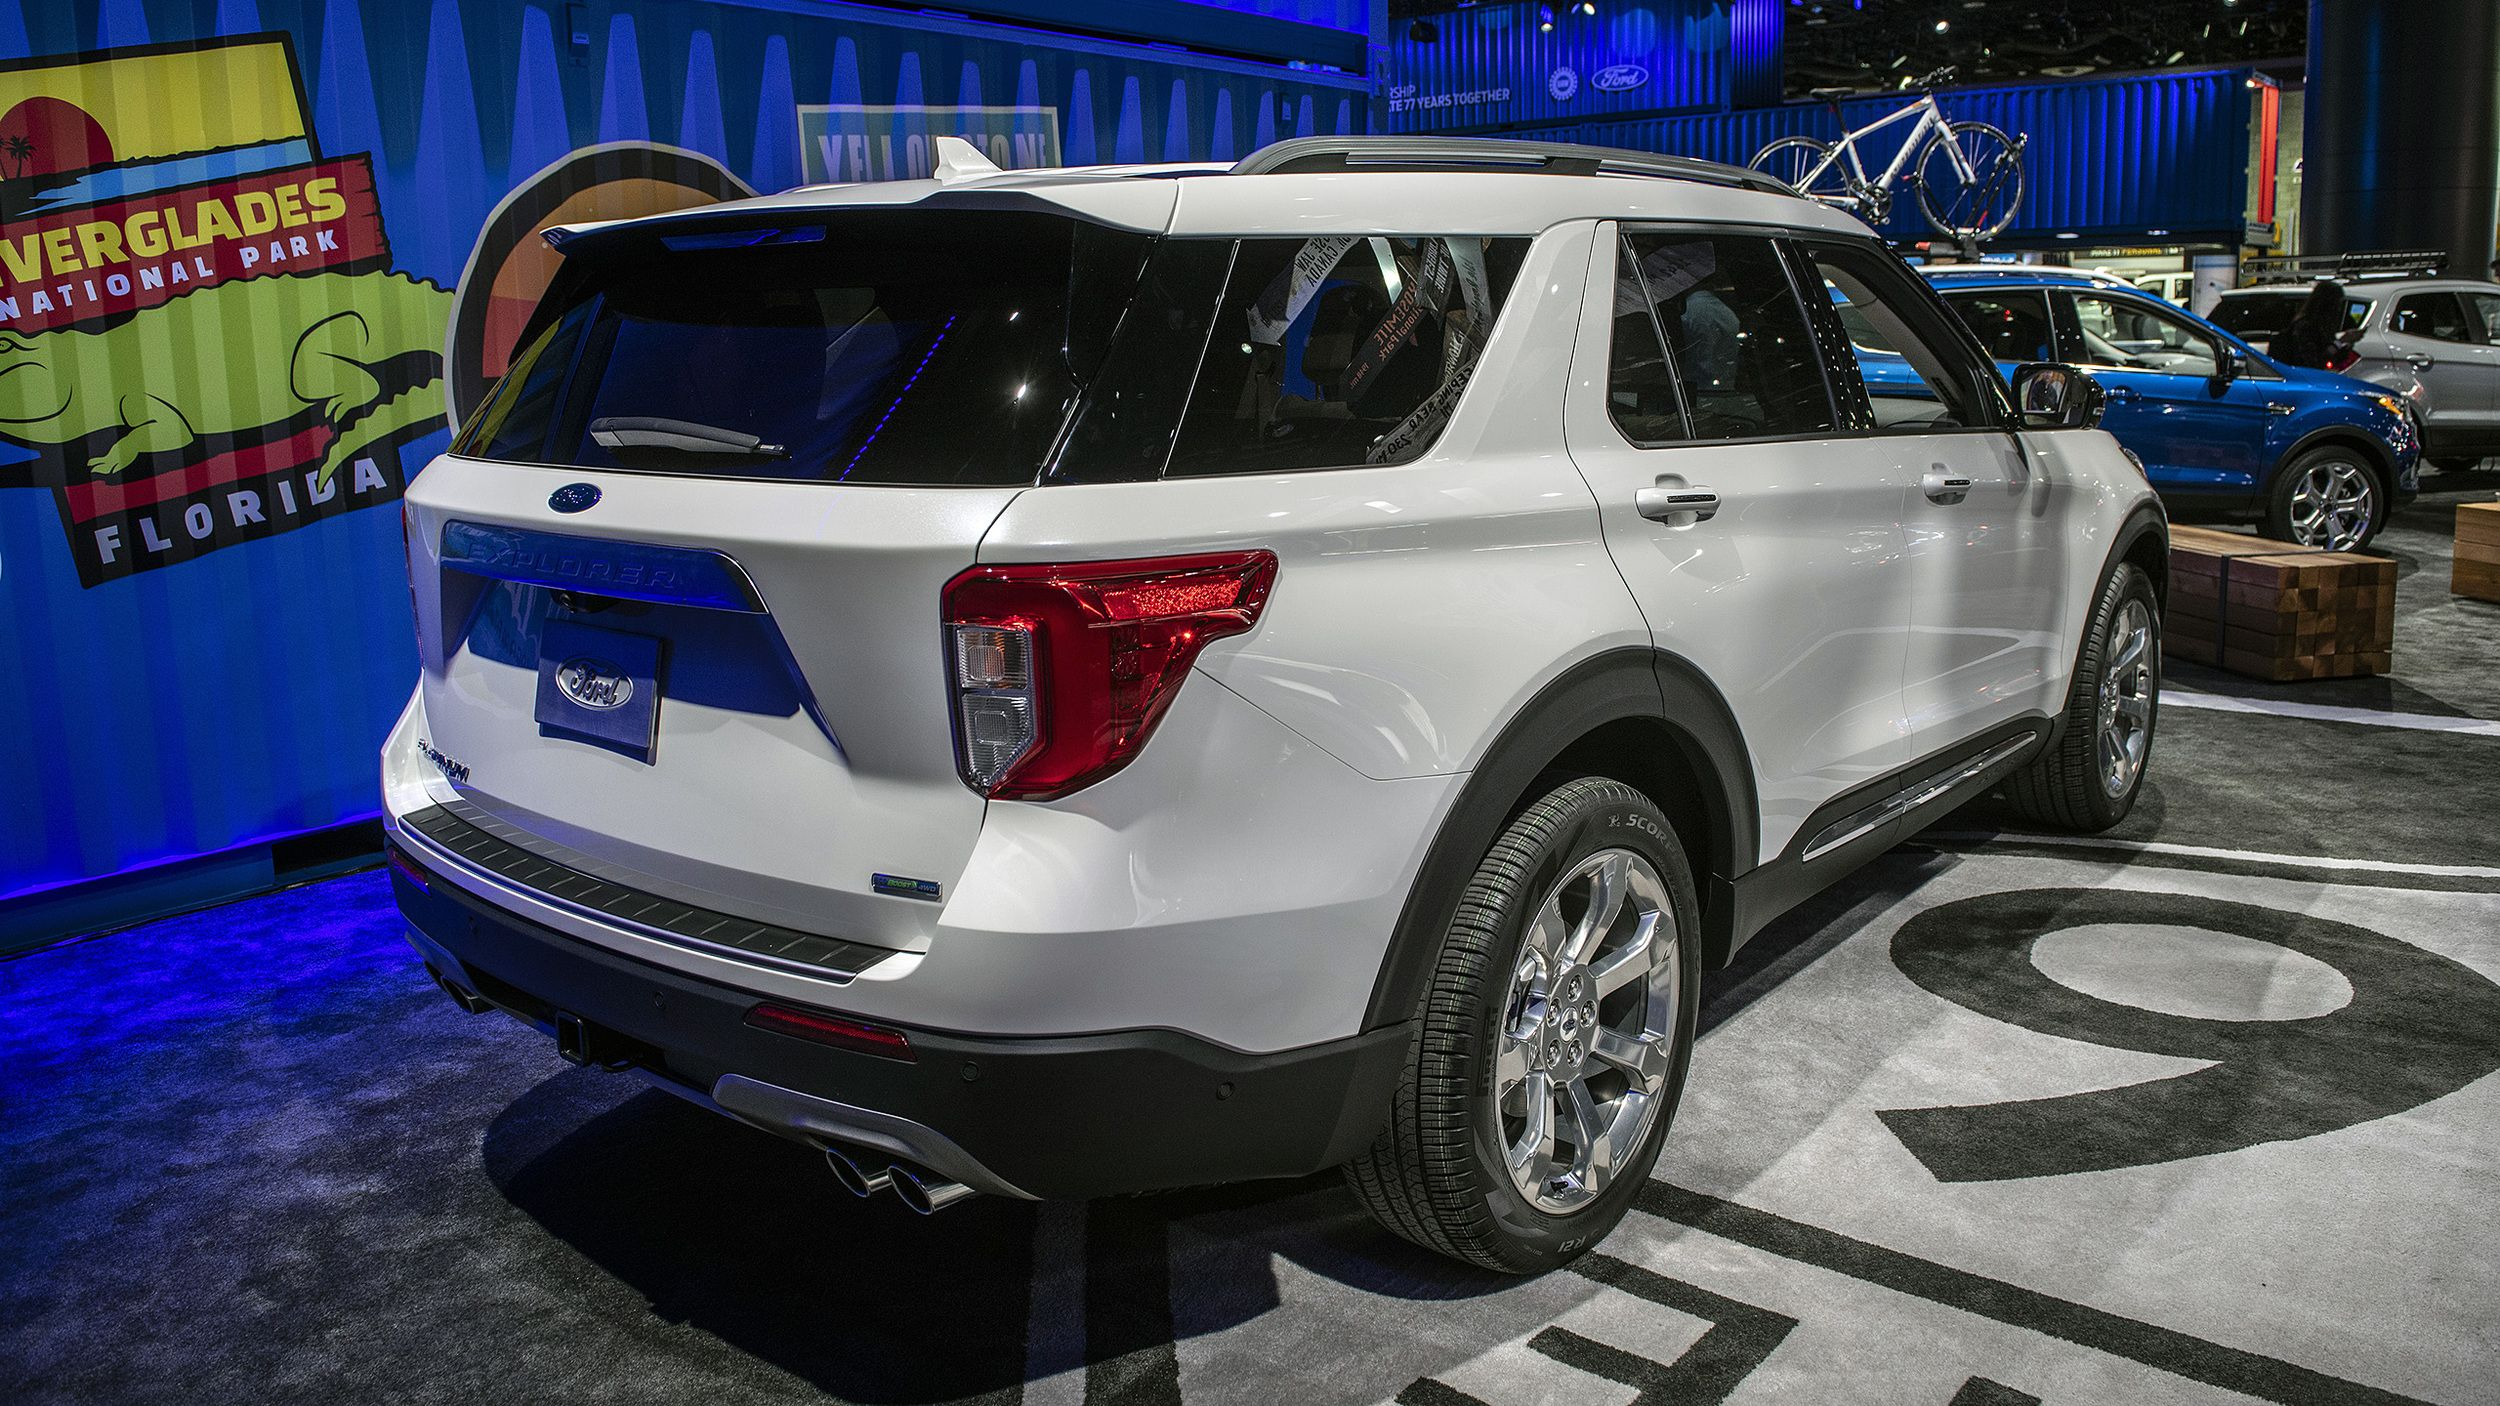 2020 Ford Explorer Detroit 2019 Photo Gallery Ford Explorer 2020 Ford Explorer Ford